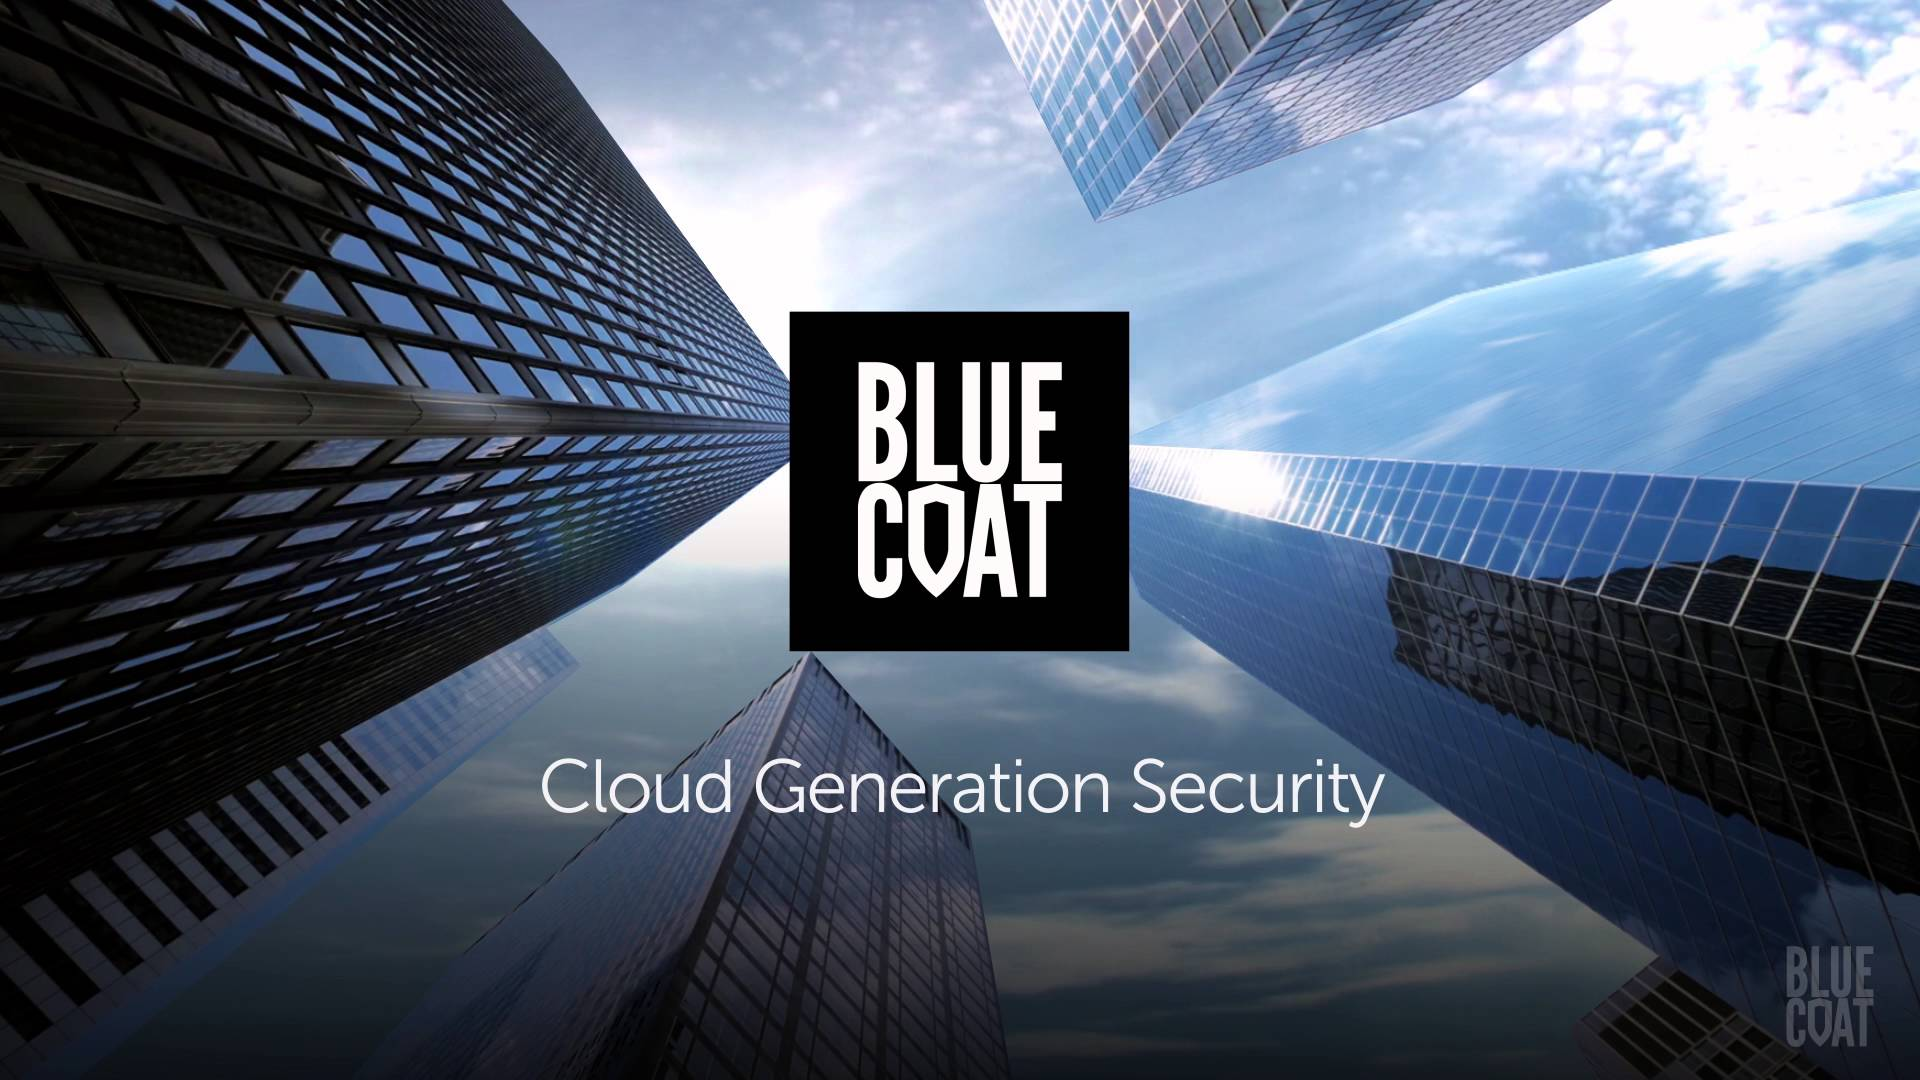 Blue Coat being acquired by Symantec